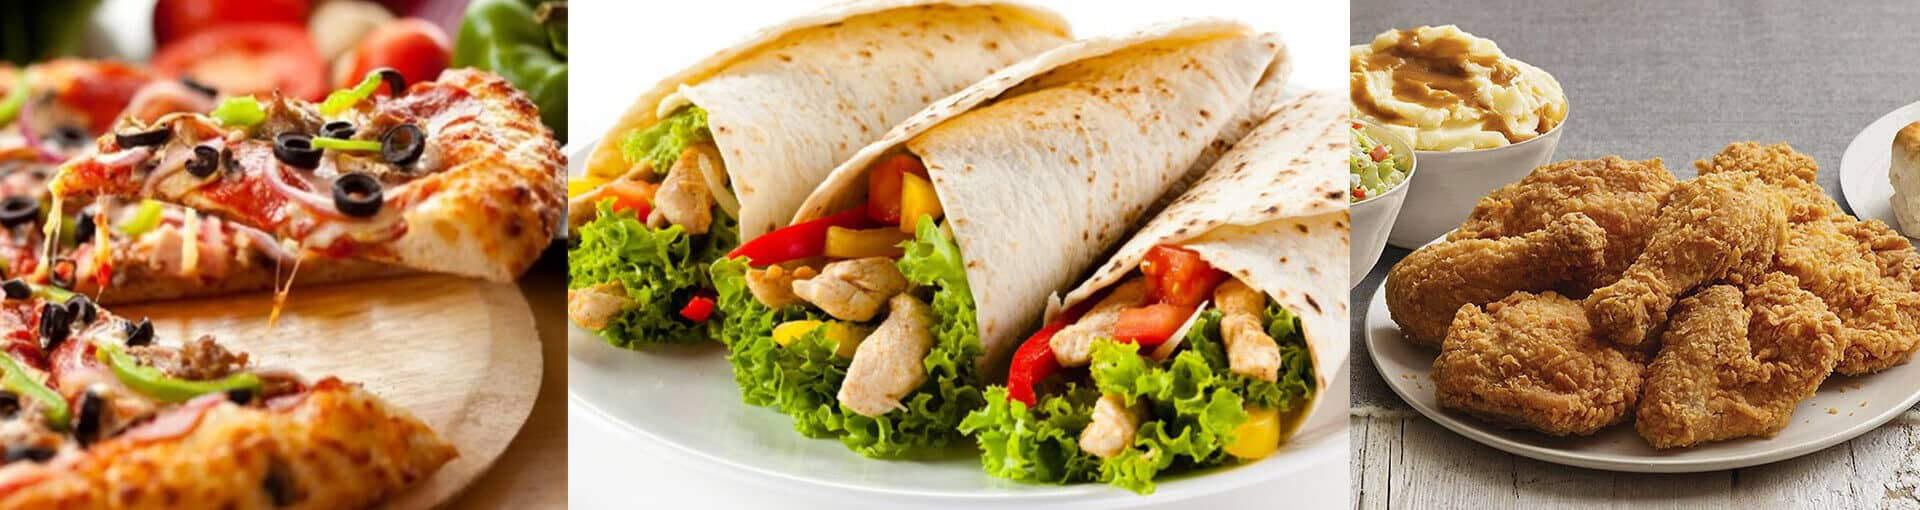 Fast food in Armenia. Where to eat easy and tasty